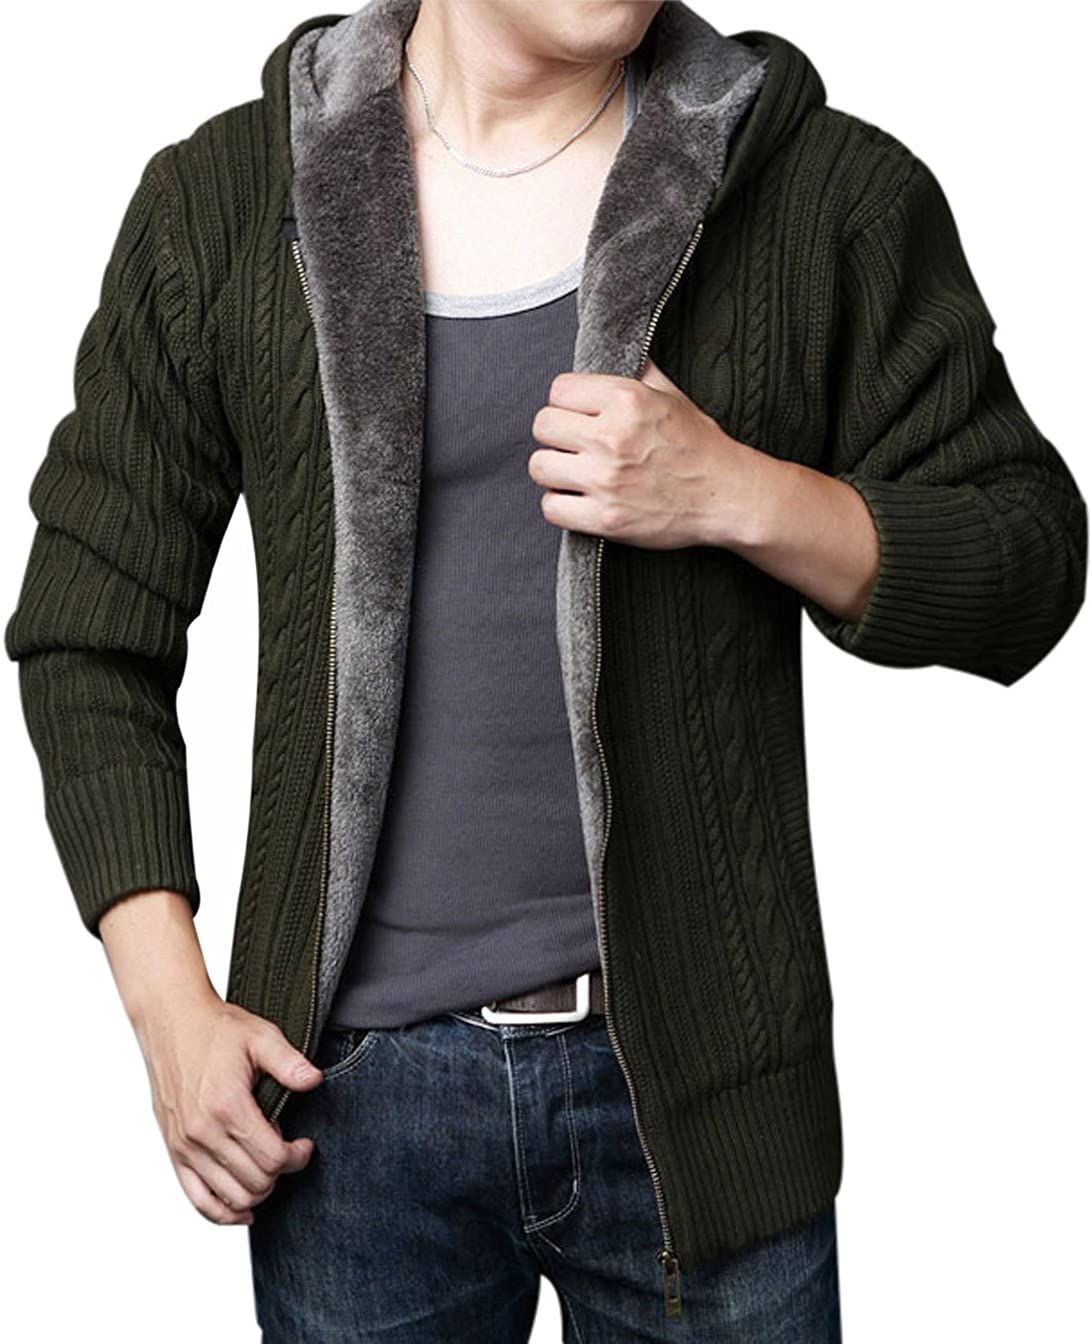 Yeokou Mens Casual Slim Winter Thick Sherpa Lined Zipper Hoodie Cardigan Sweater